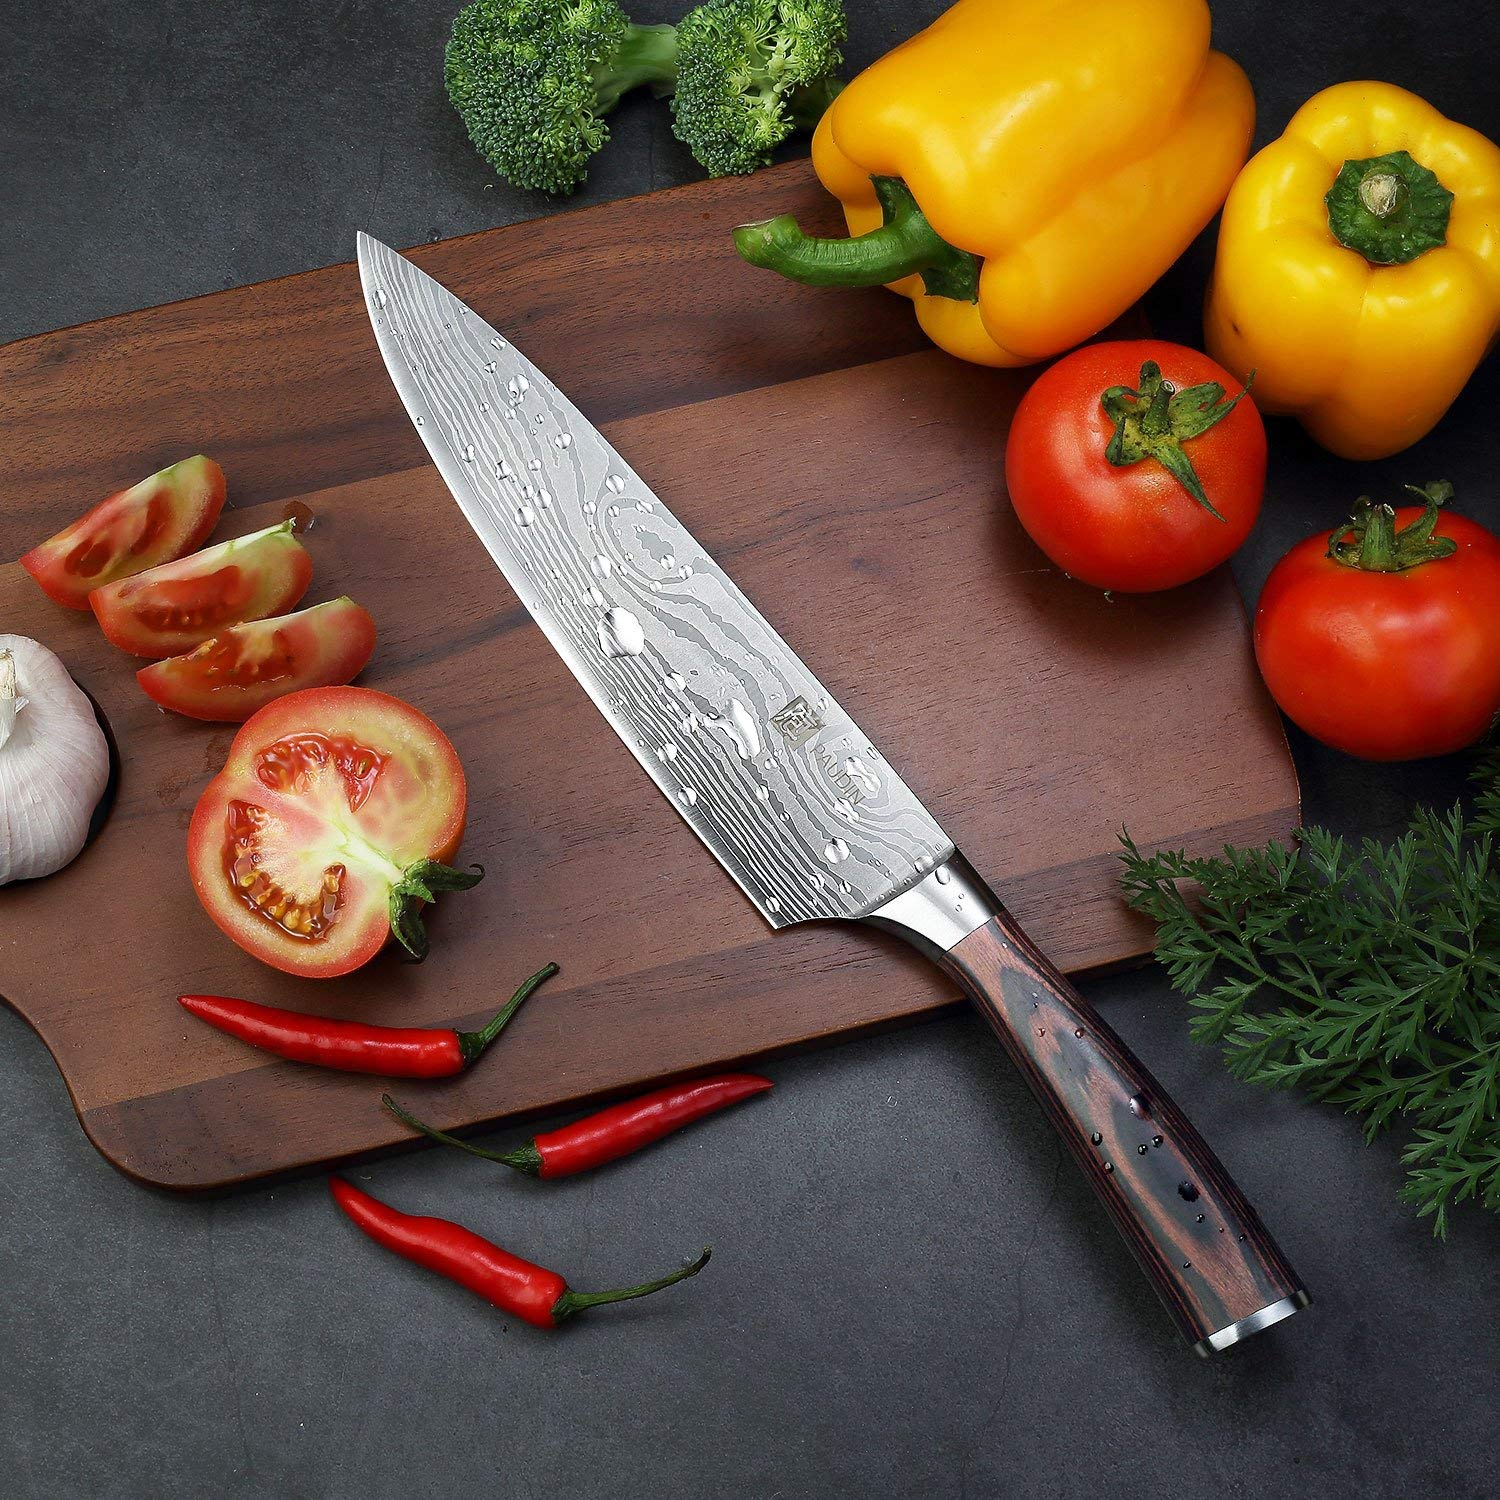 Chef Knife – PAUDIN Pro Kitchen Knife 8 Inch Chef's Knife